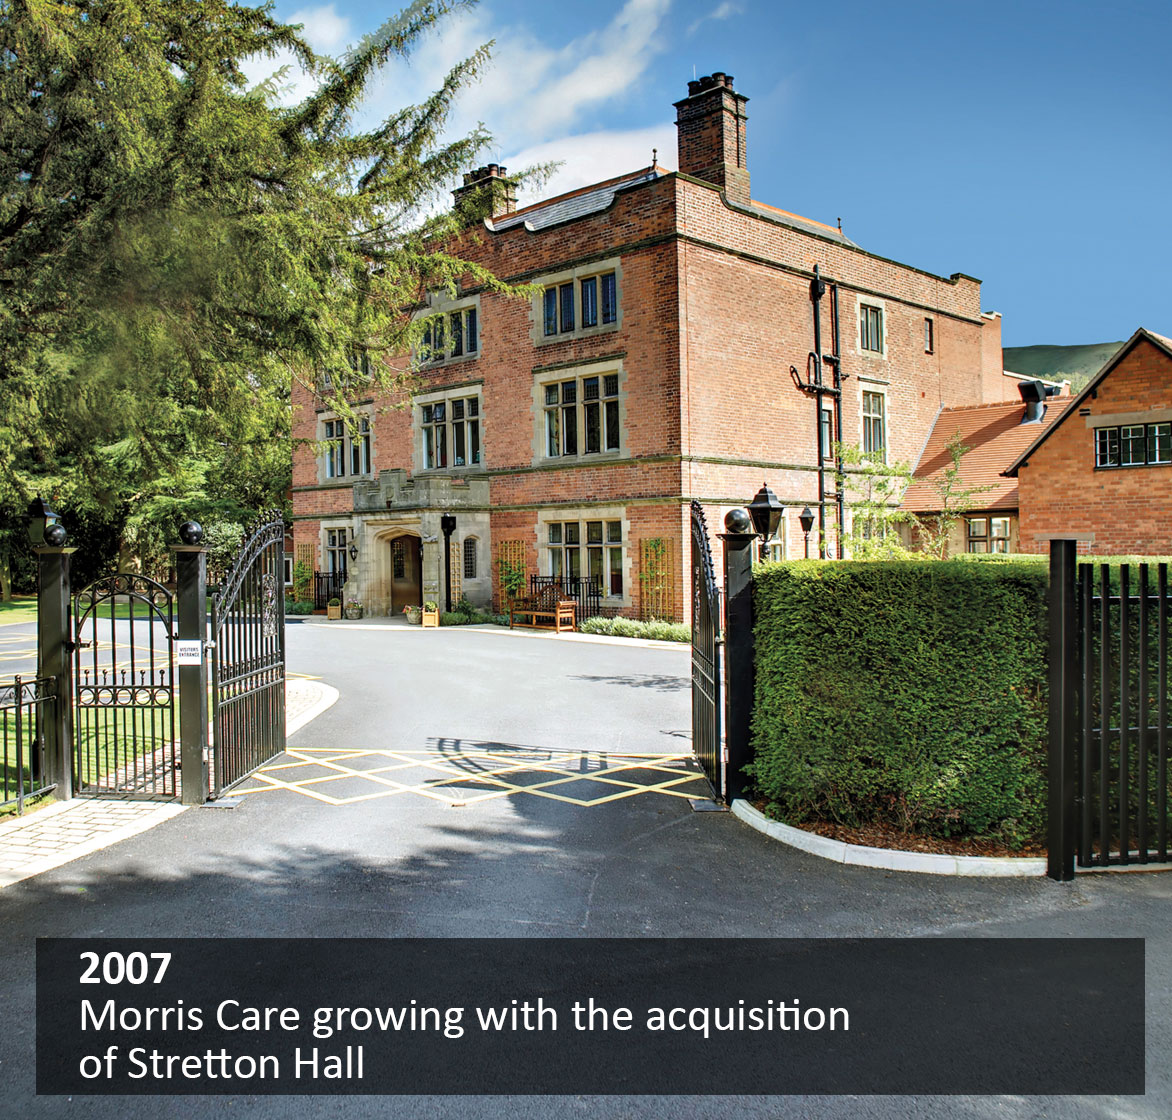 Morris Care growing with the acquisition of Stretton Hall